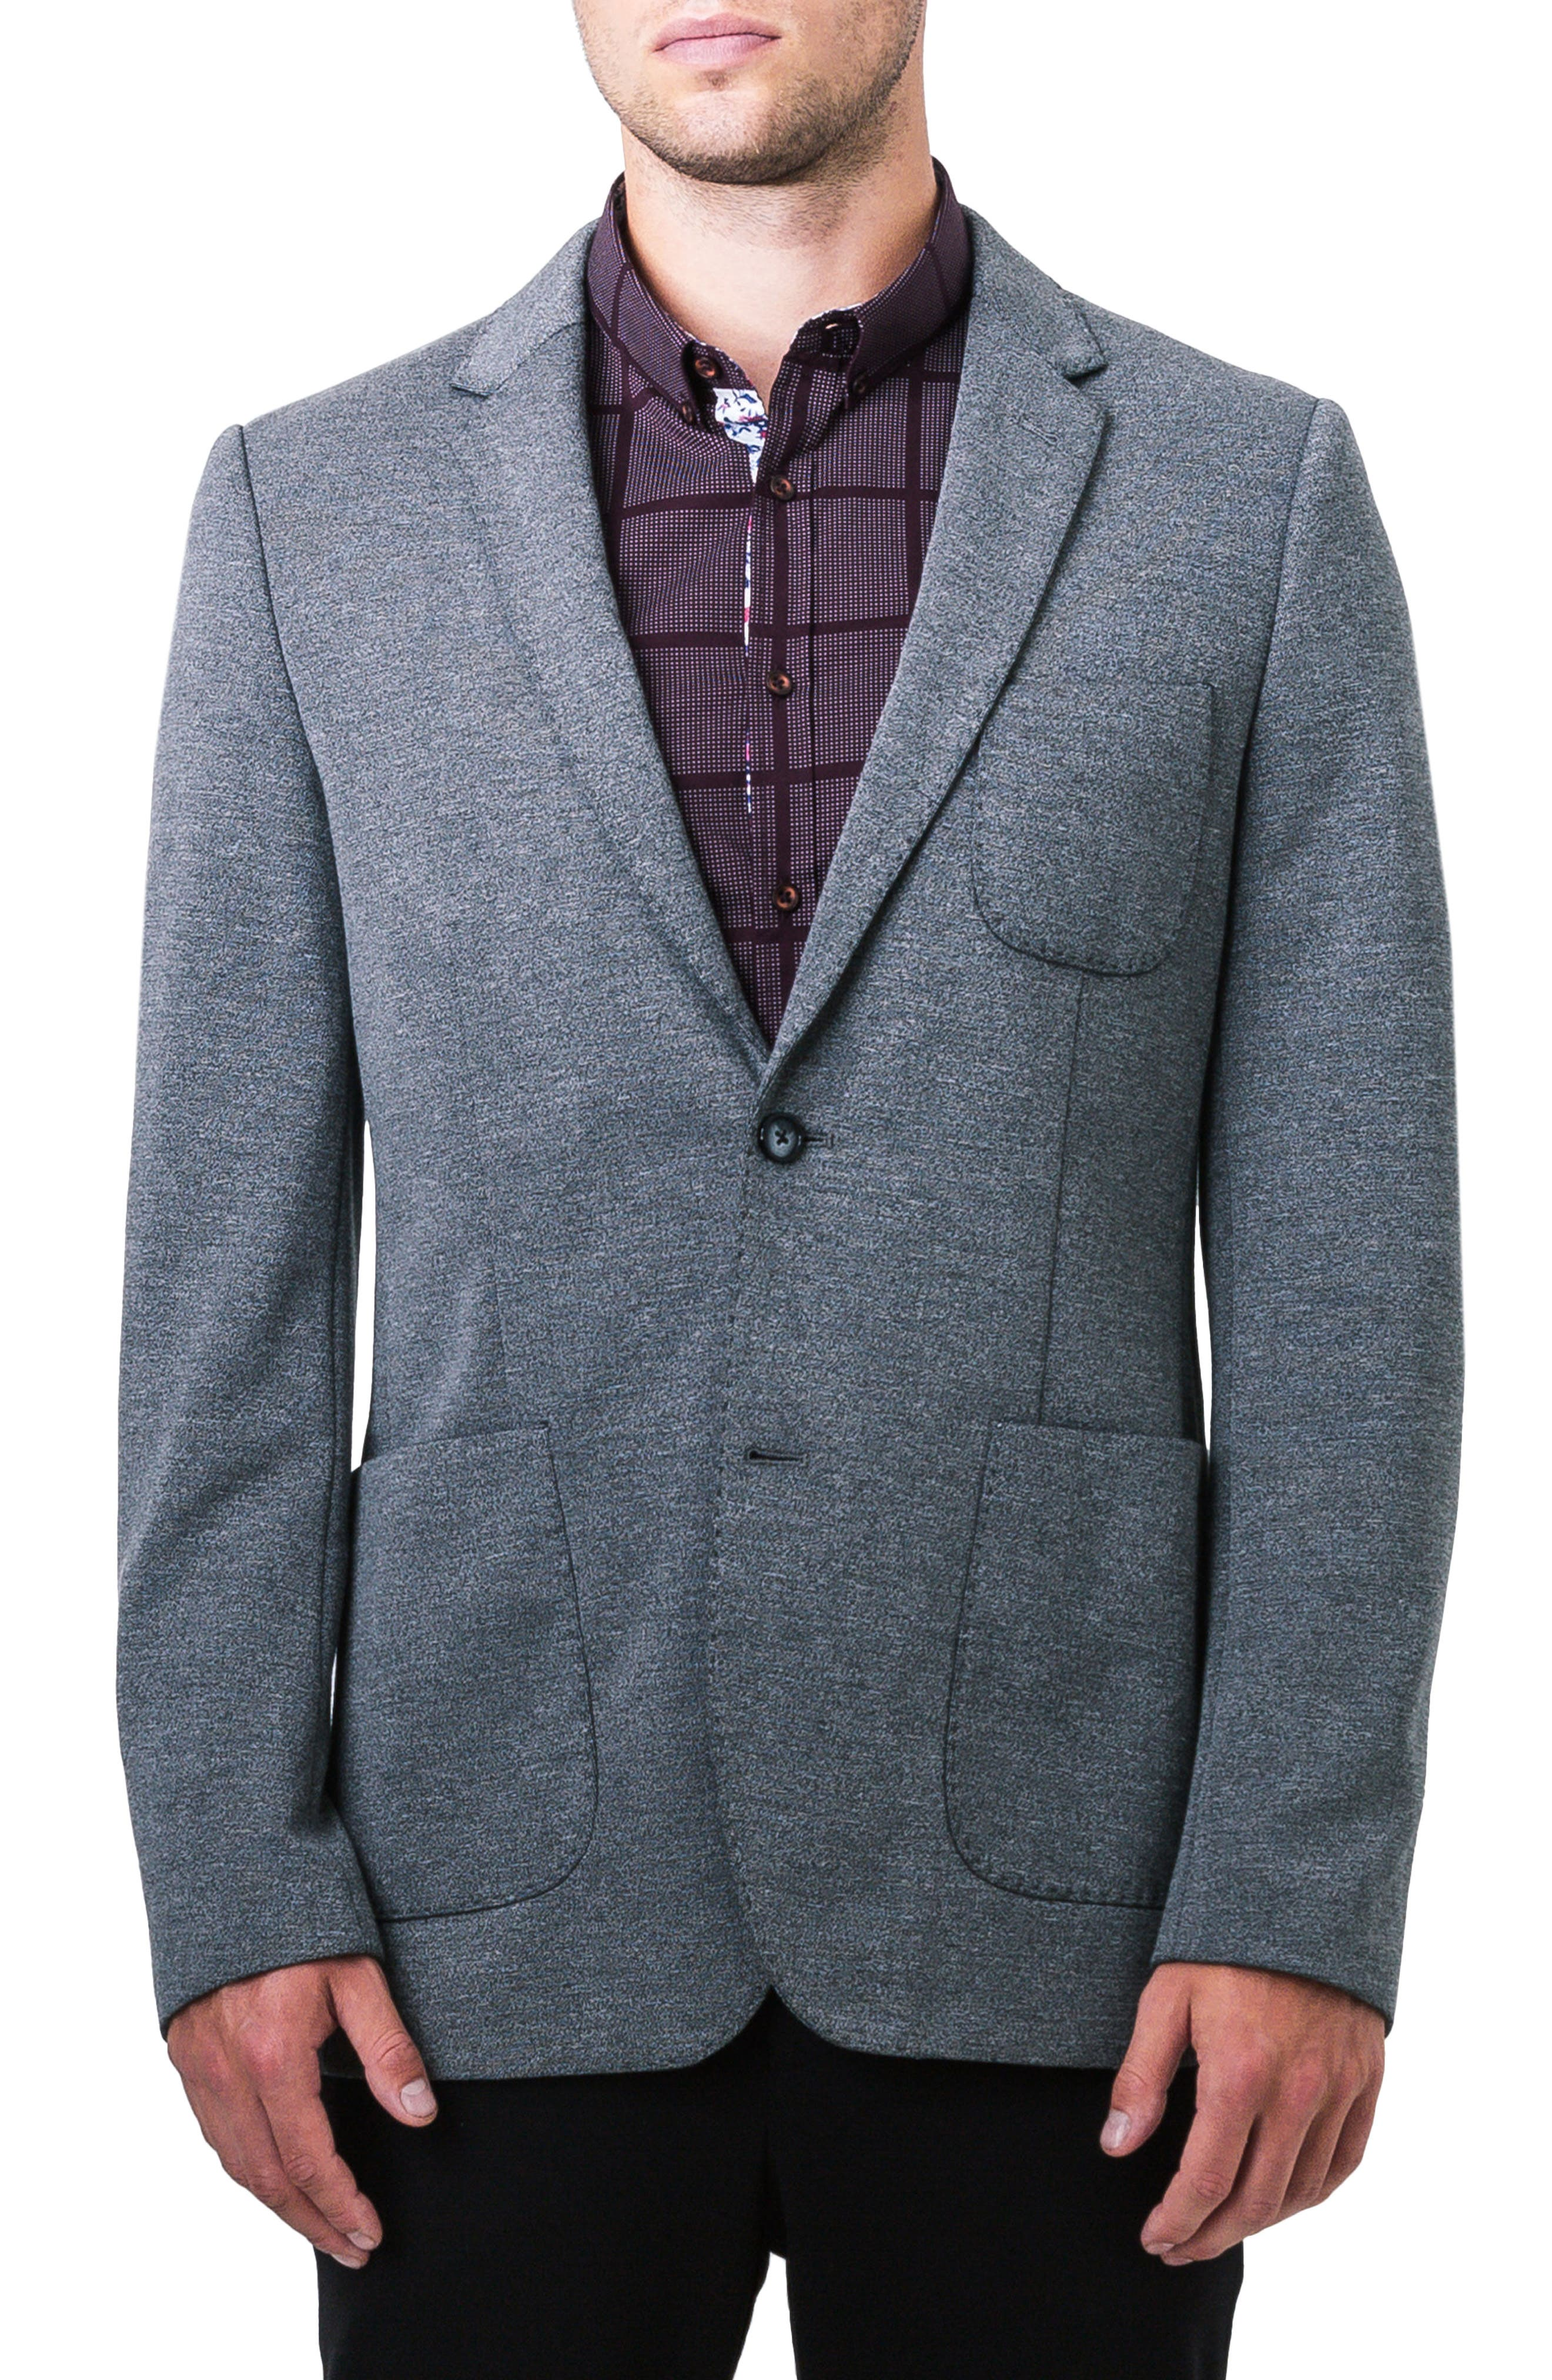 Ovierto Casual Blazer,                             Main thumbnail 1, color,                             050